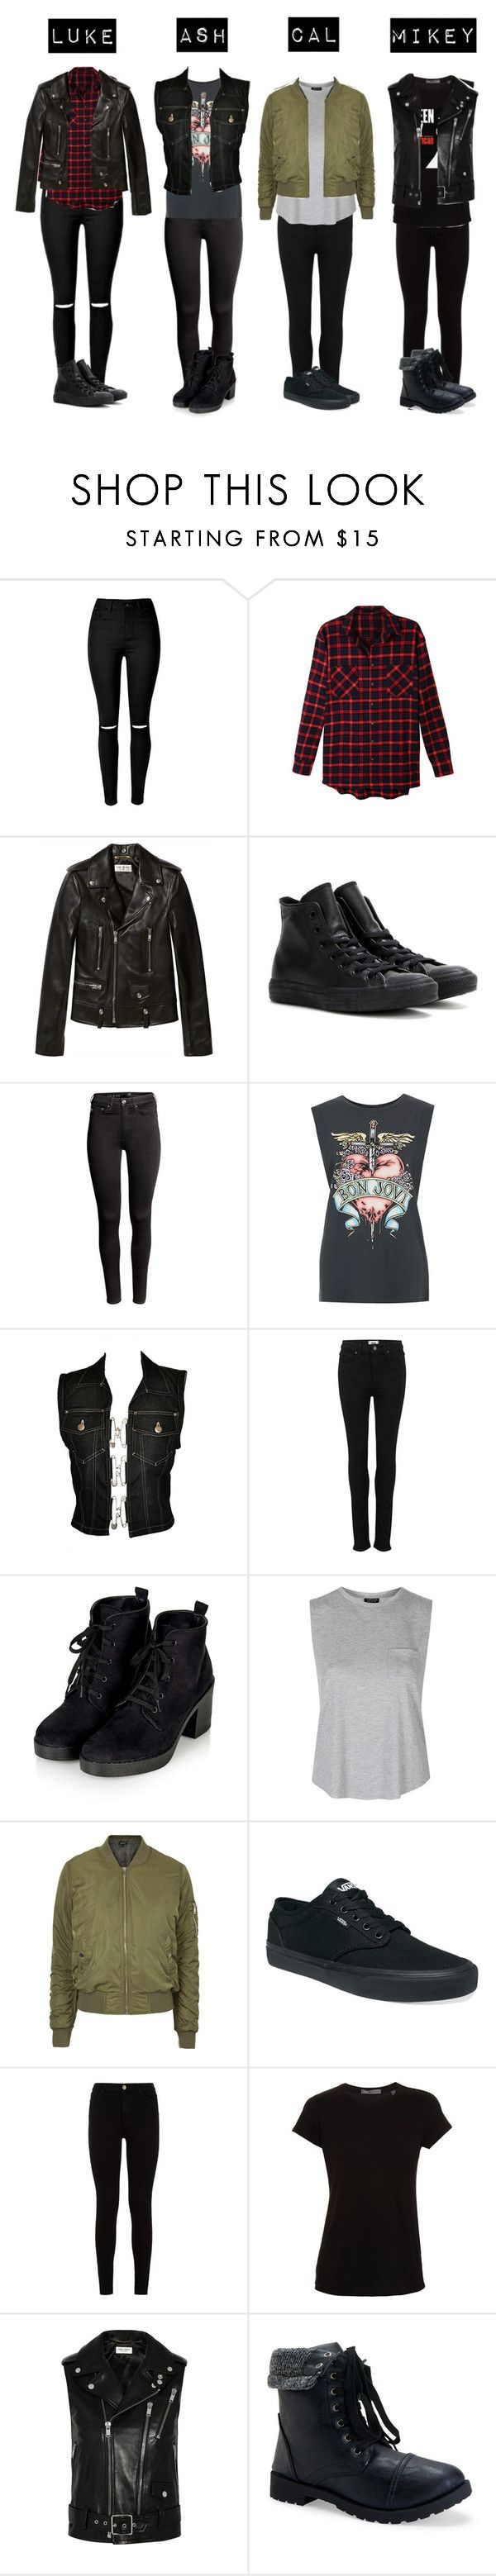 """5SOS Outfits- Girl Edition (1)"" by luke-hemmings-baby ❤ liked on Polyvore featuring LE3NO, Yves Saint Laurent, Converse, H&M, Jean-Paul Gaultier, Paige Denim, Topshop, Vans, 7 For All Mankind and Vince"